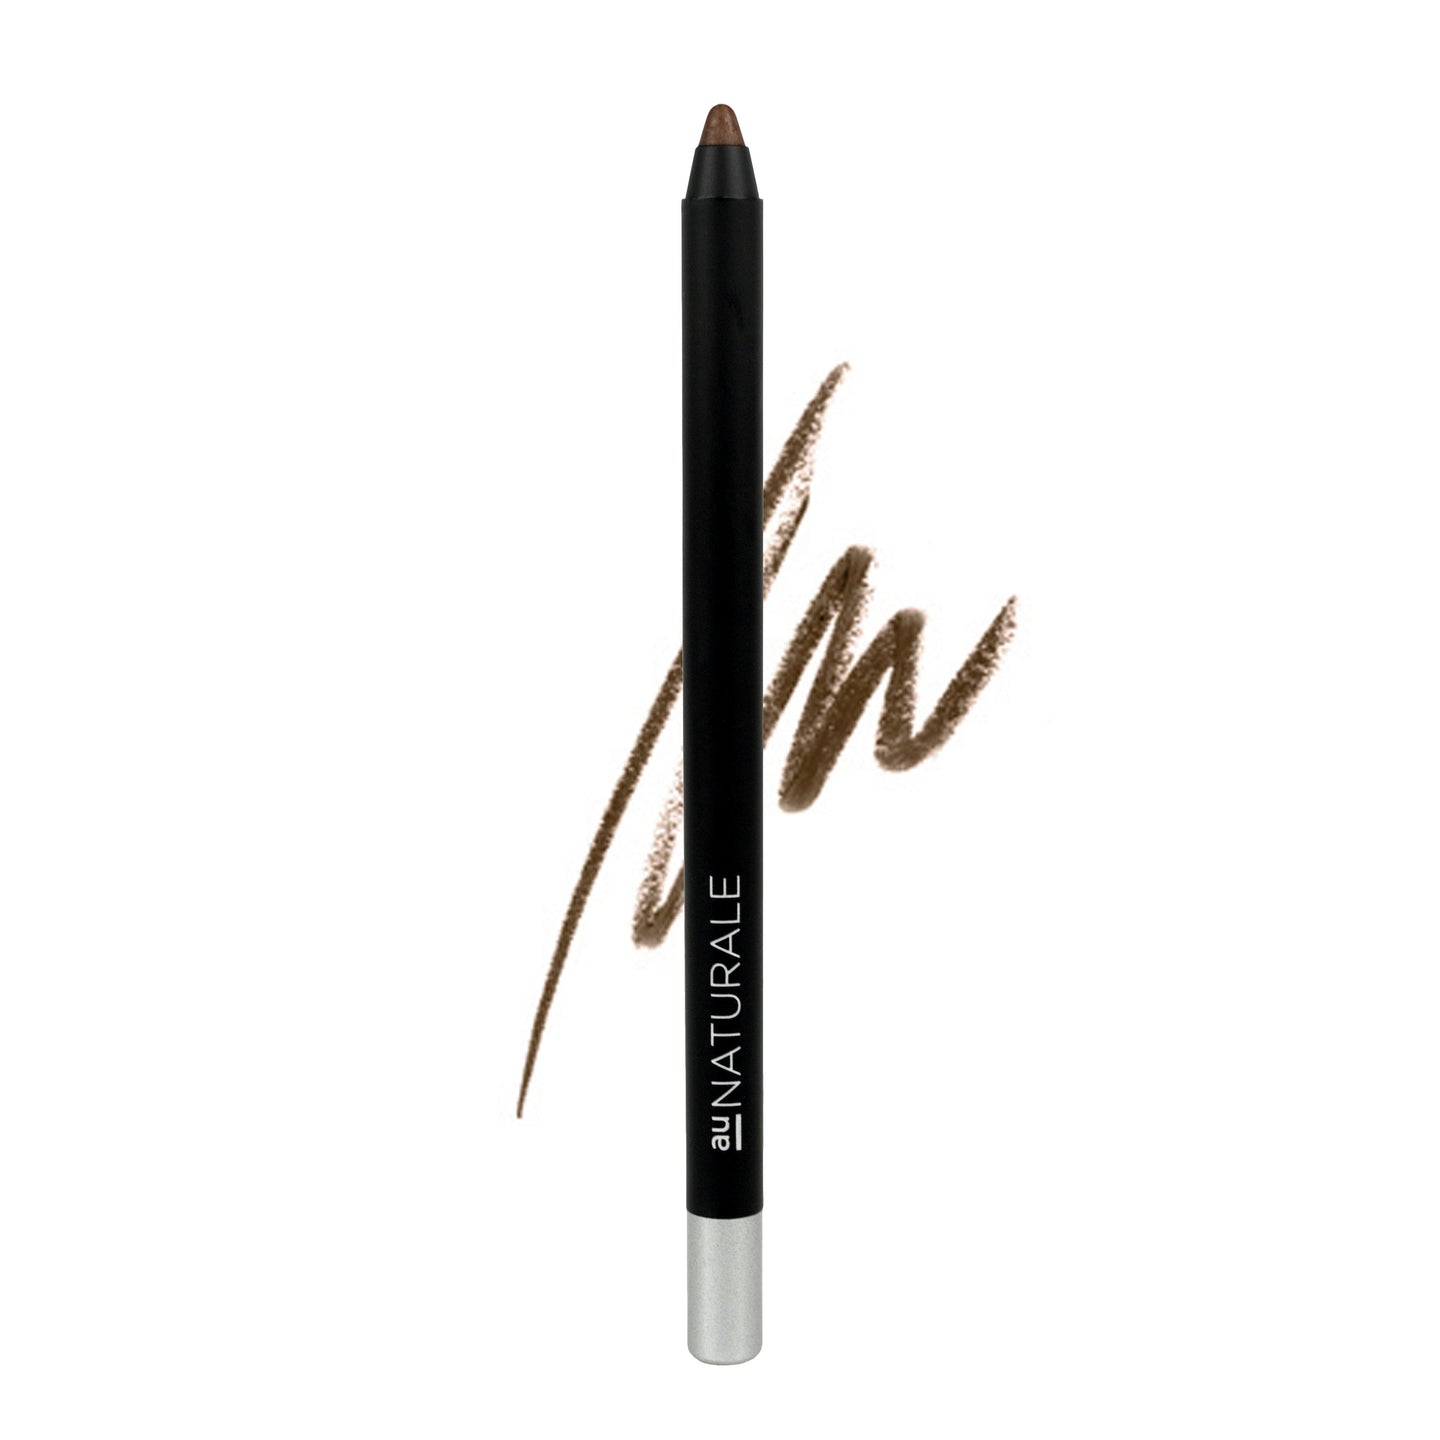 Shop Brow Boss Organic Brow Pencil in Cara by Au Naturale Cosmetics - Lets make it a trend #explorebeautiful